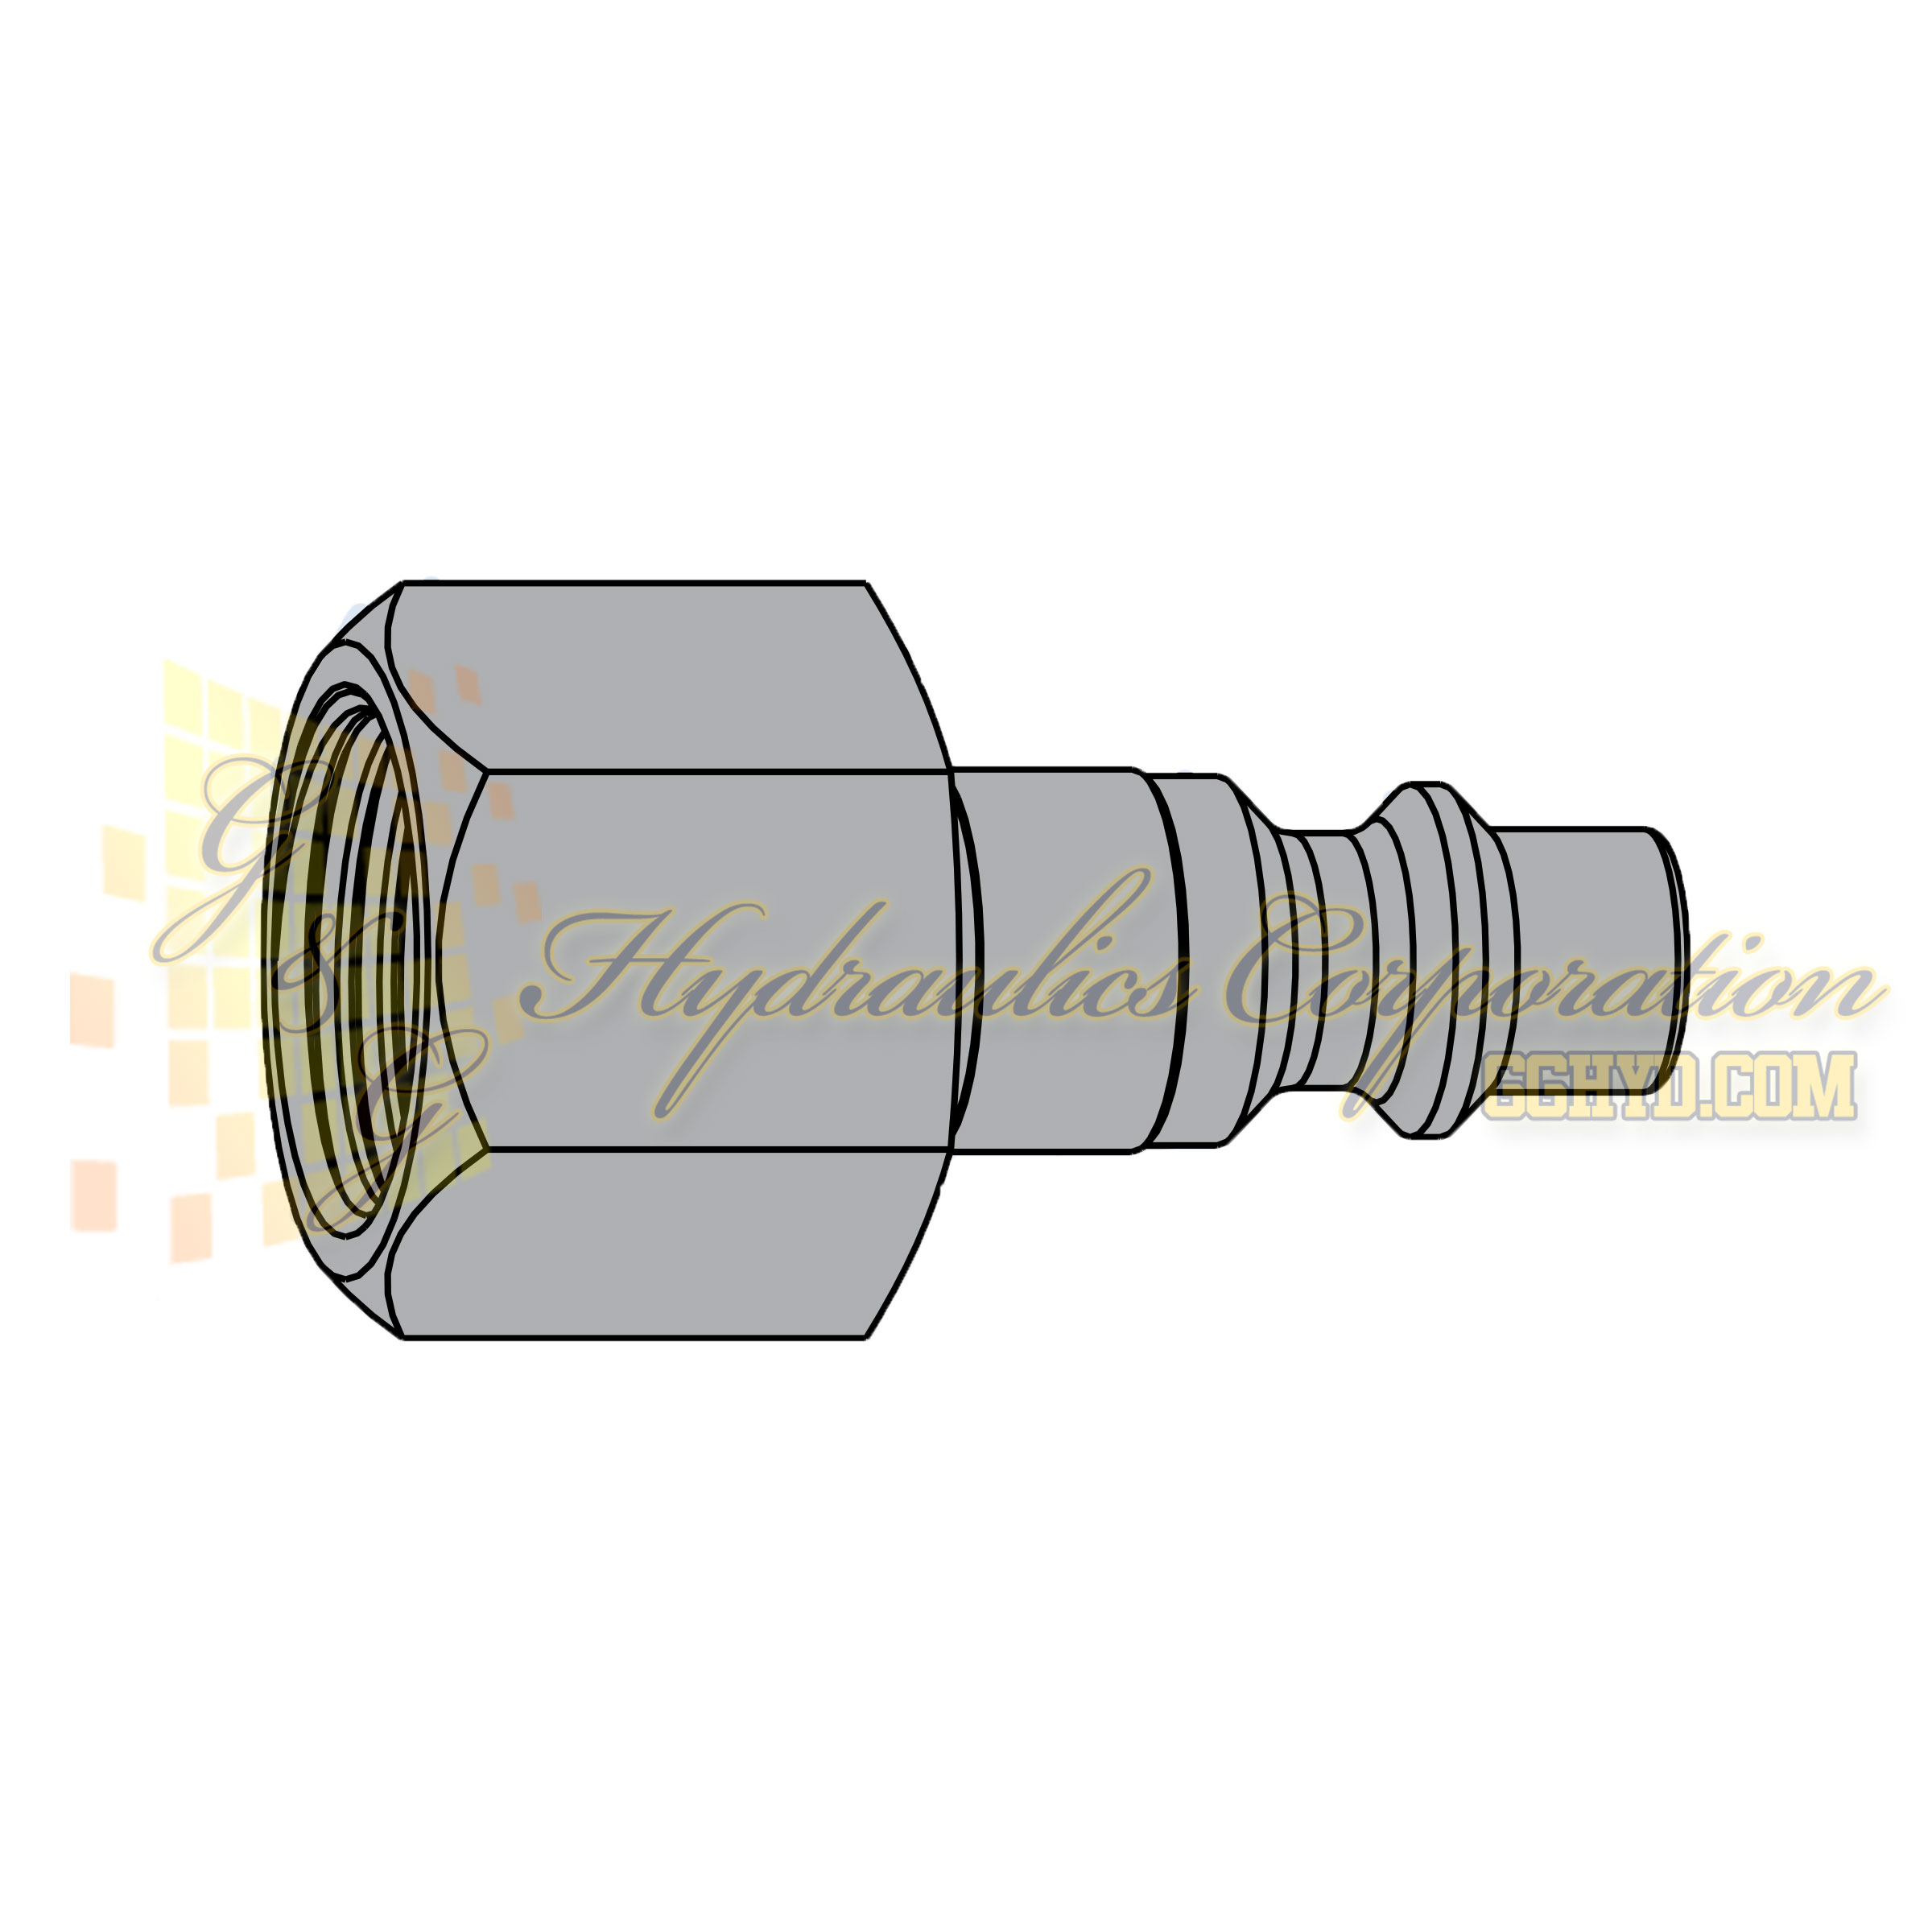 "10-310-5401 CEJN Quick Disconnect Nipple, 1/8"" NPT Female Threads, 232 PSI (16 bar)"